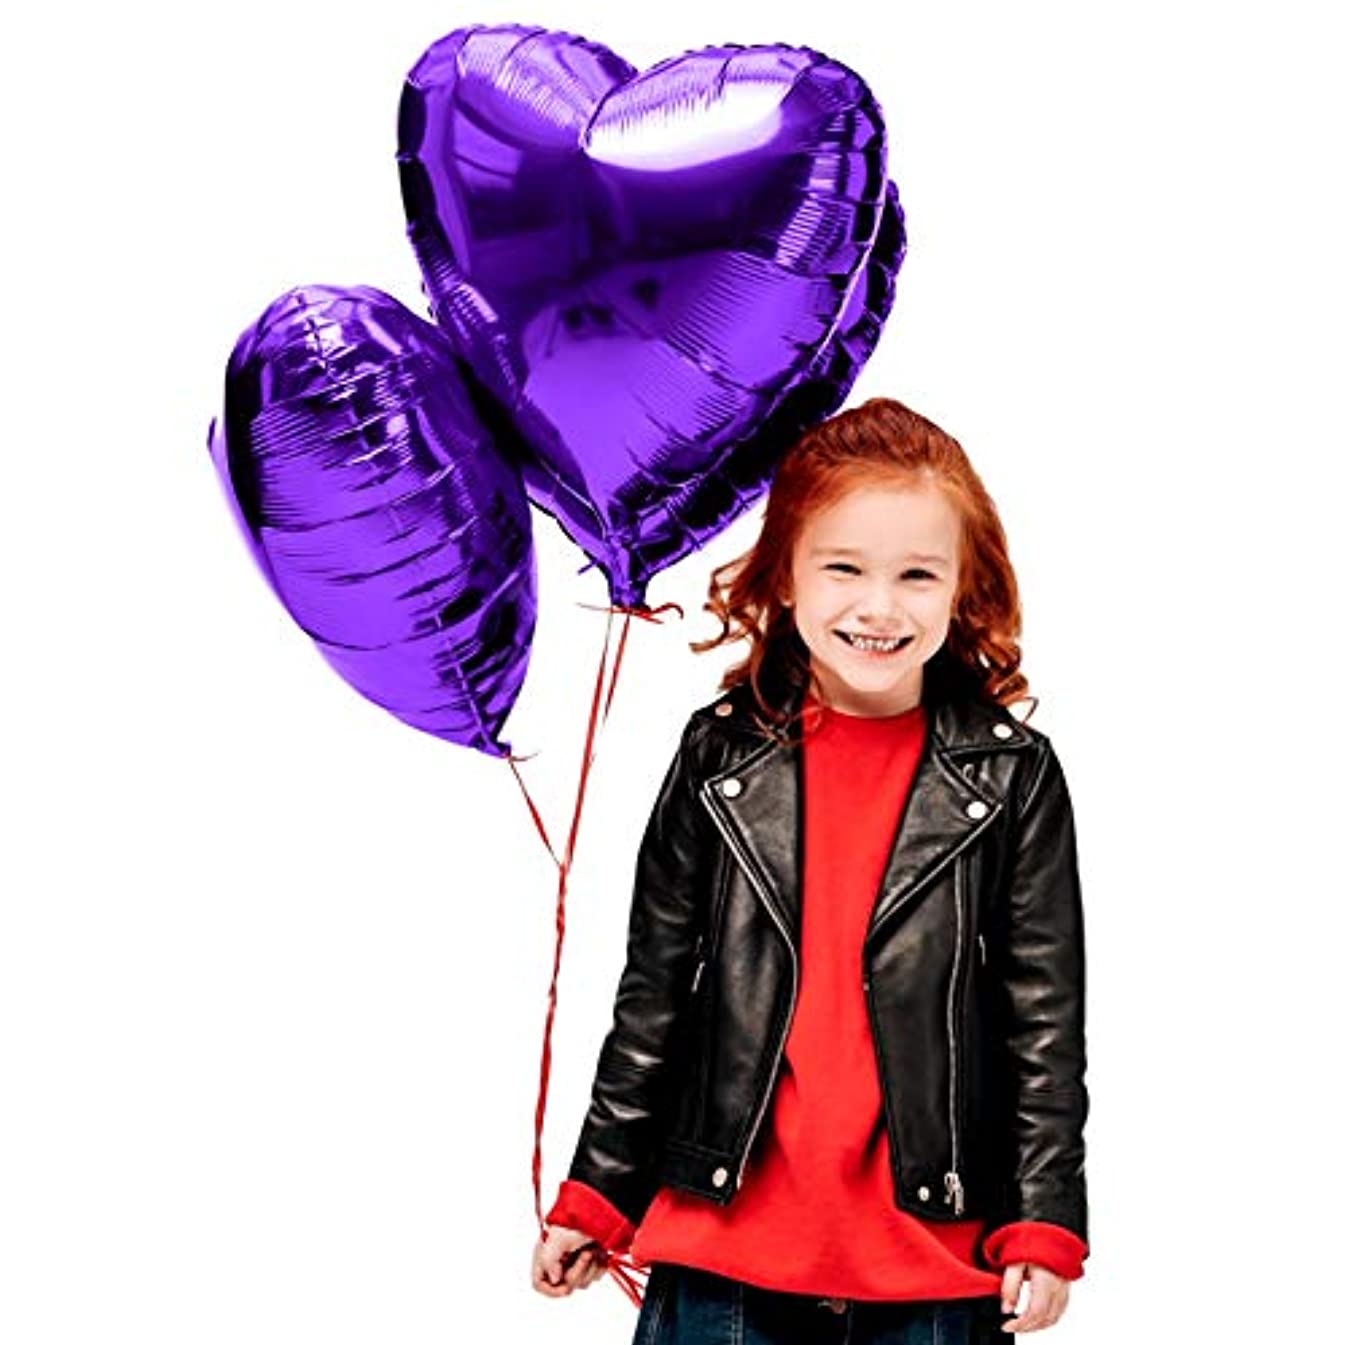 Treasures Gifted Valentines Day Heart Love Decorations in Violet Purple Foil Mylar Balloons for Birthday Bridal Shower Wedding Engagement Party Graduation Supplies (12 Pack)